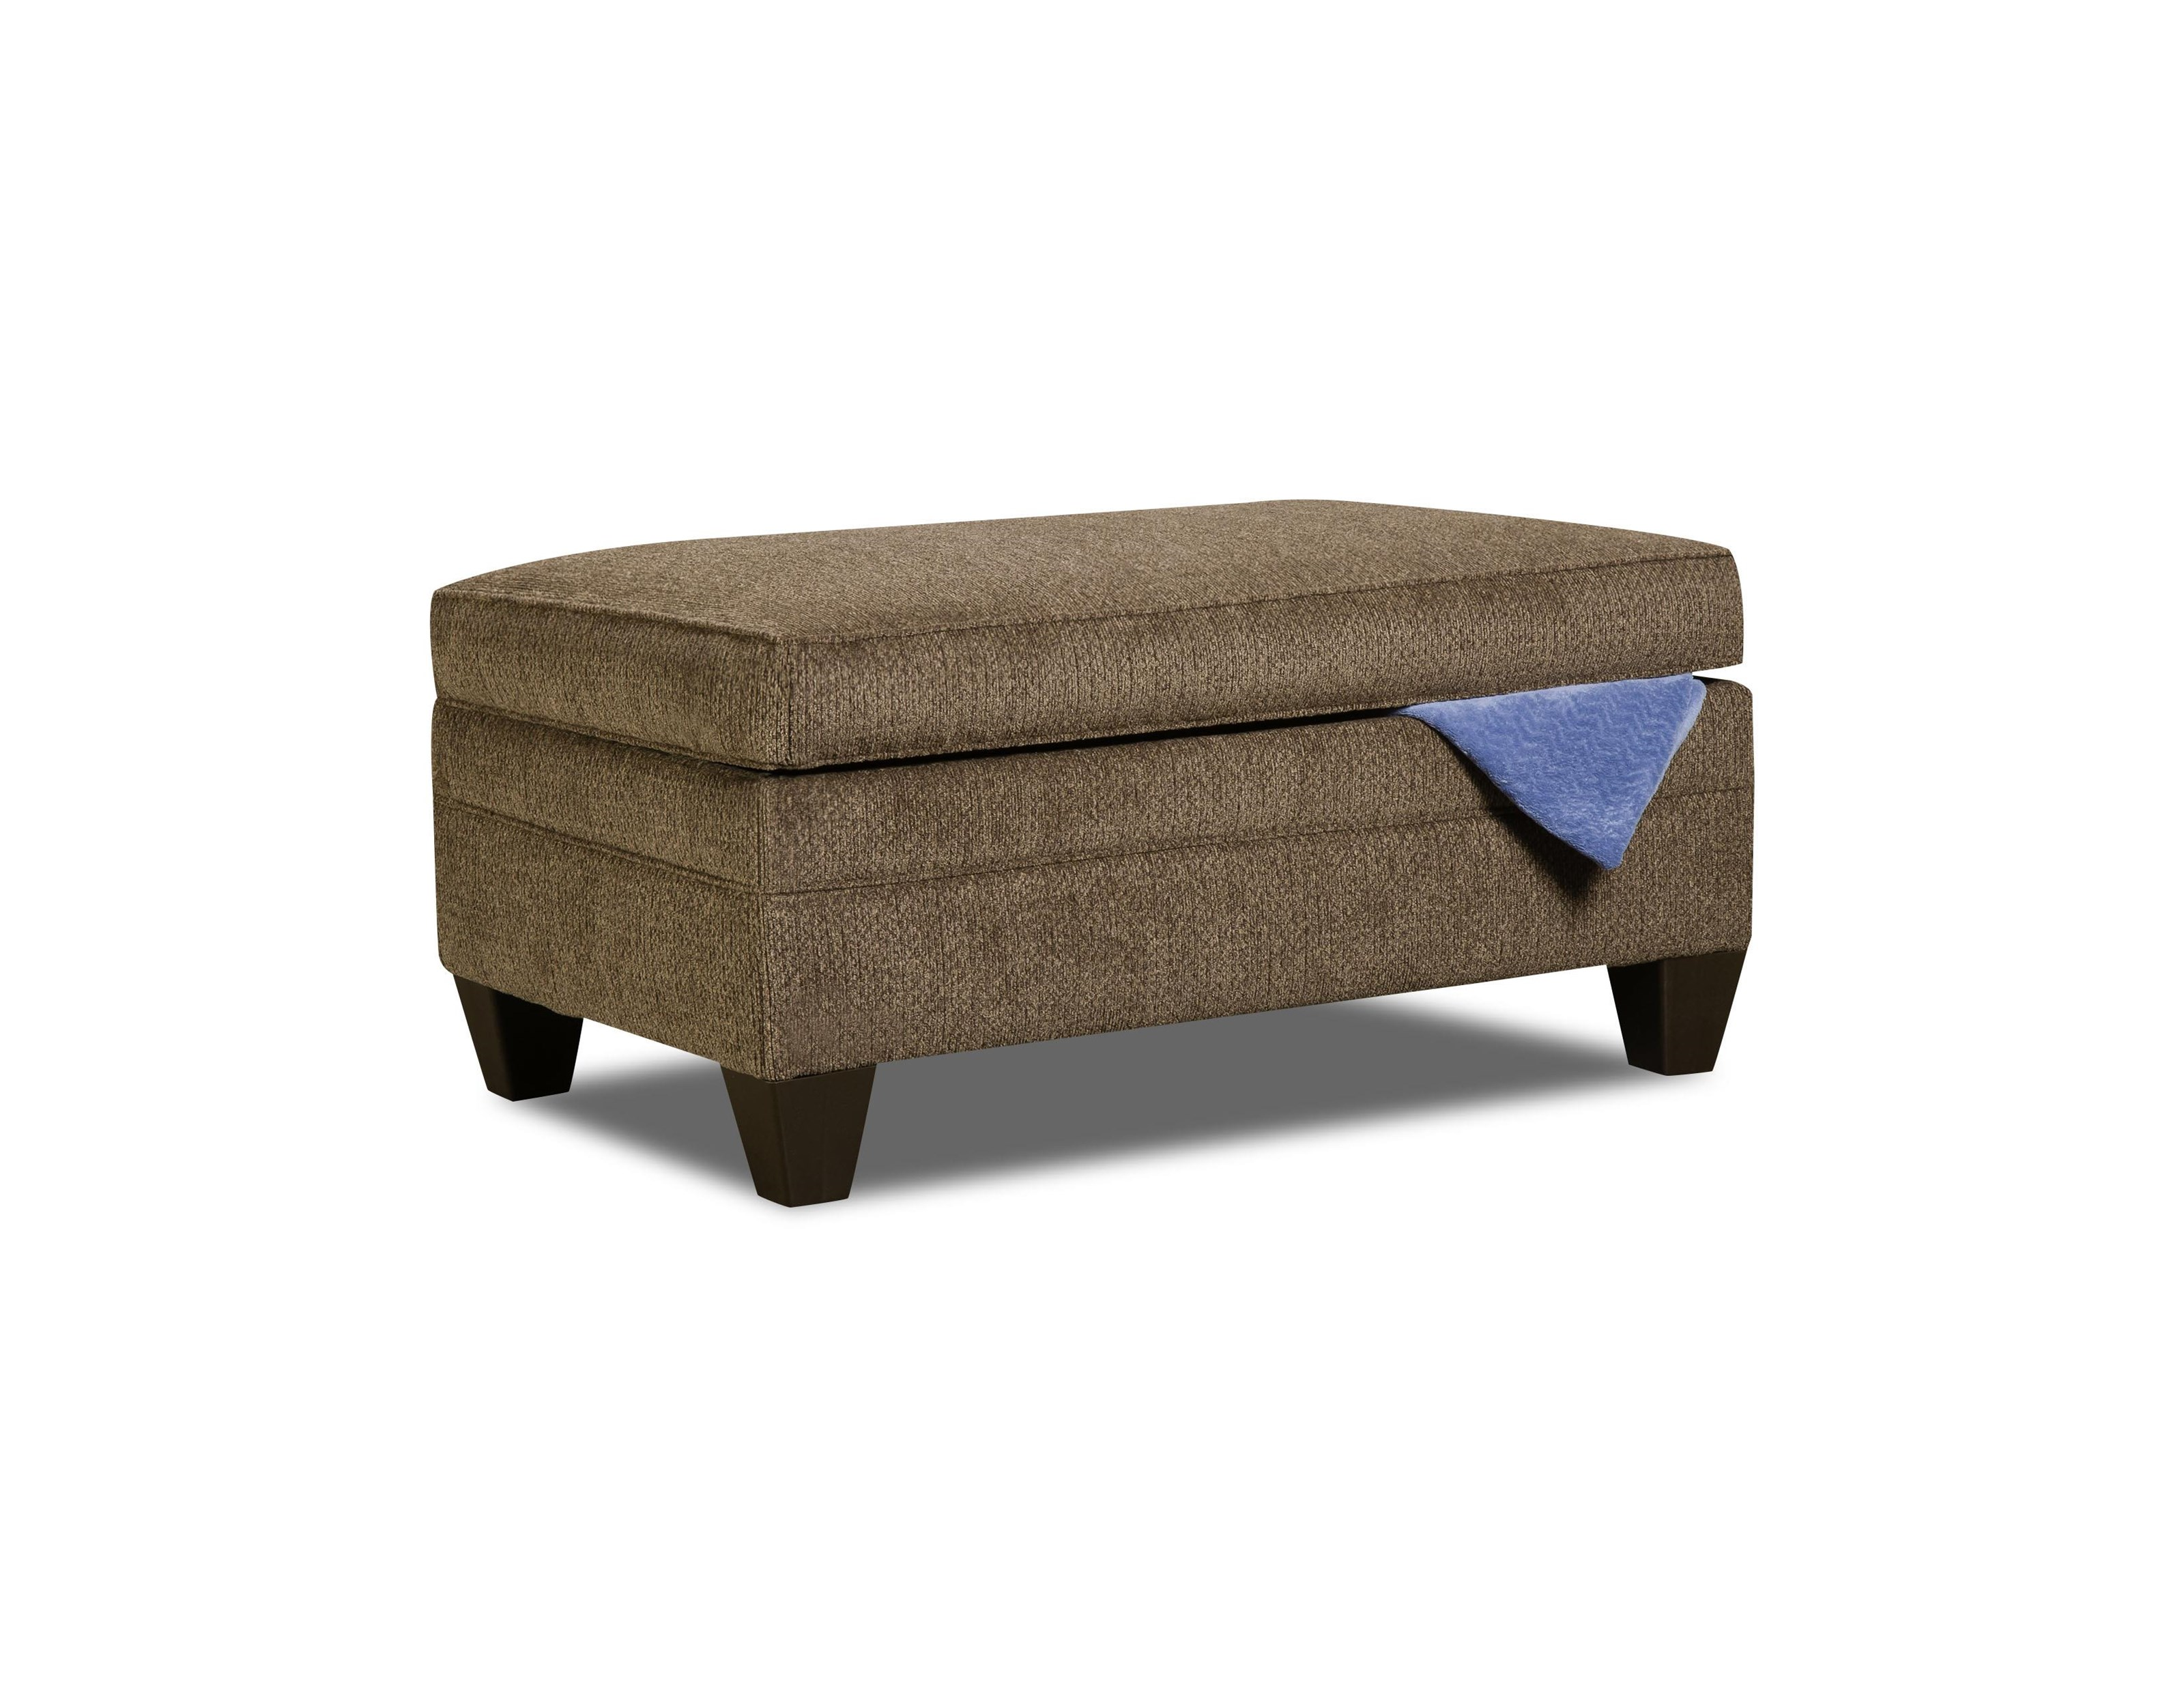 United Furniture Industries 6485 Transitional Storage Ottoman - Item Number: 6485StorageOttoman-AlbanyTruffle